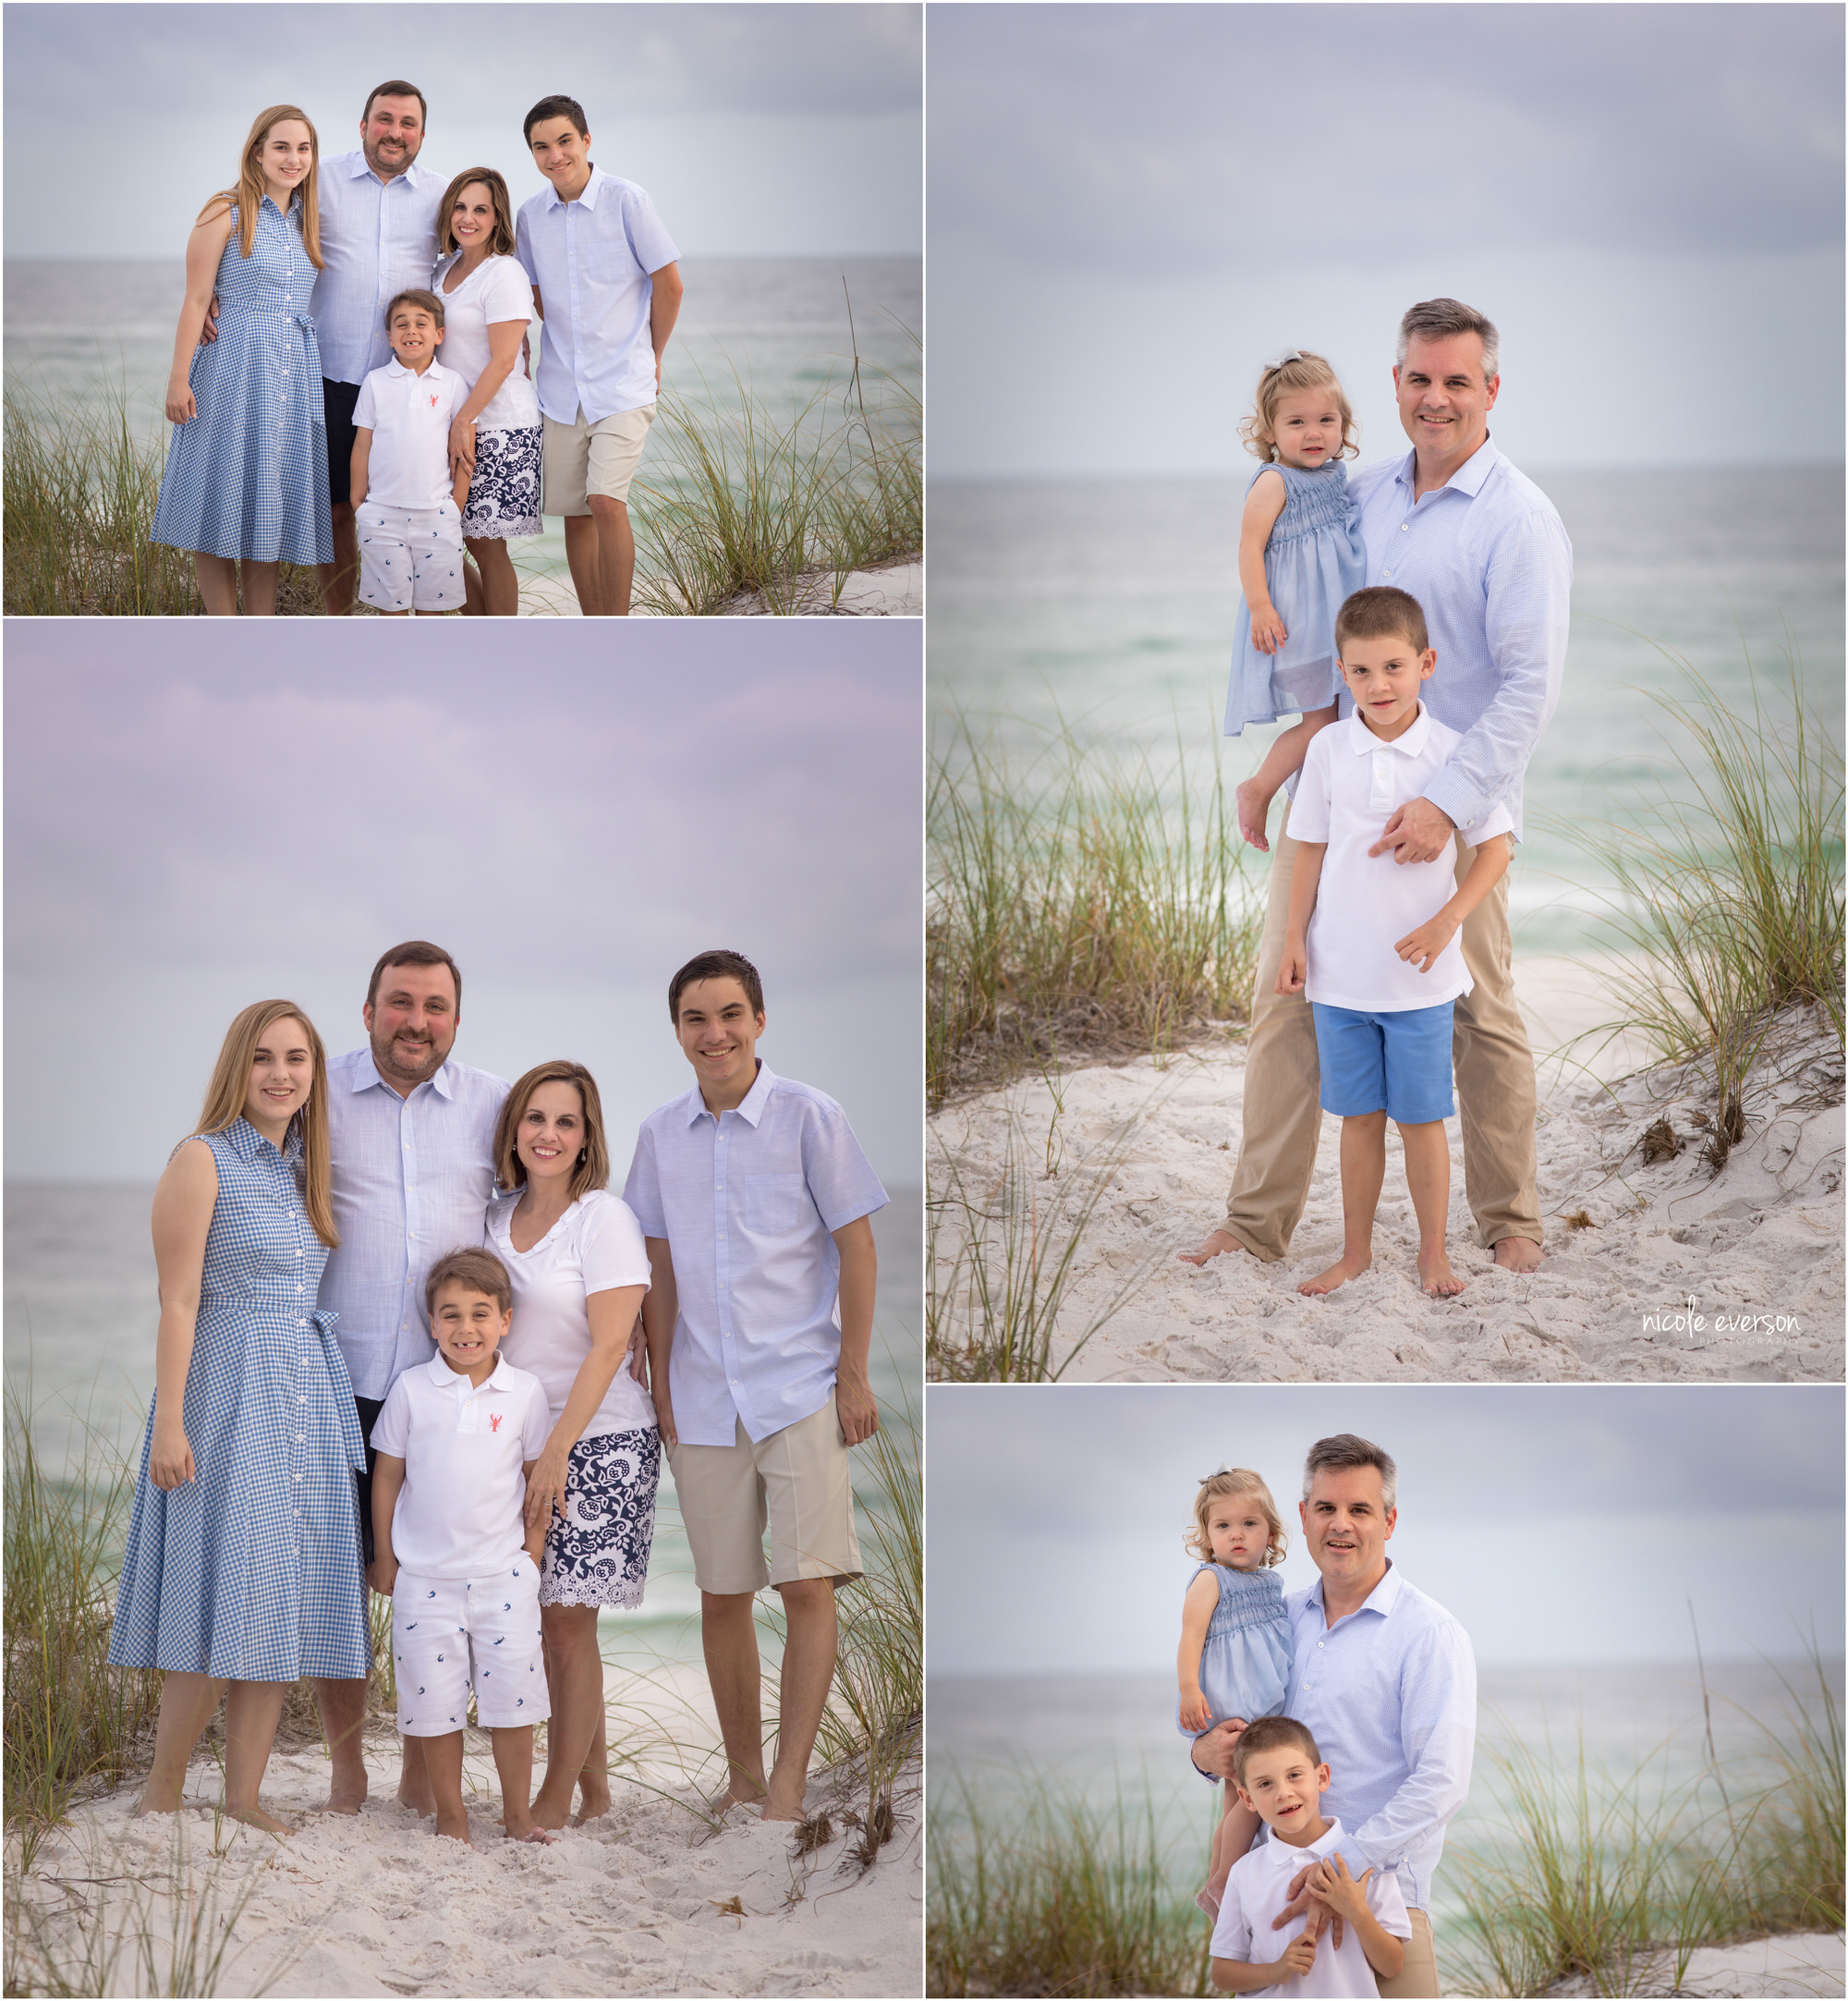 photographers in destin fl who photograph families on the beach